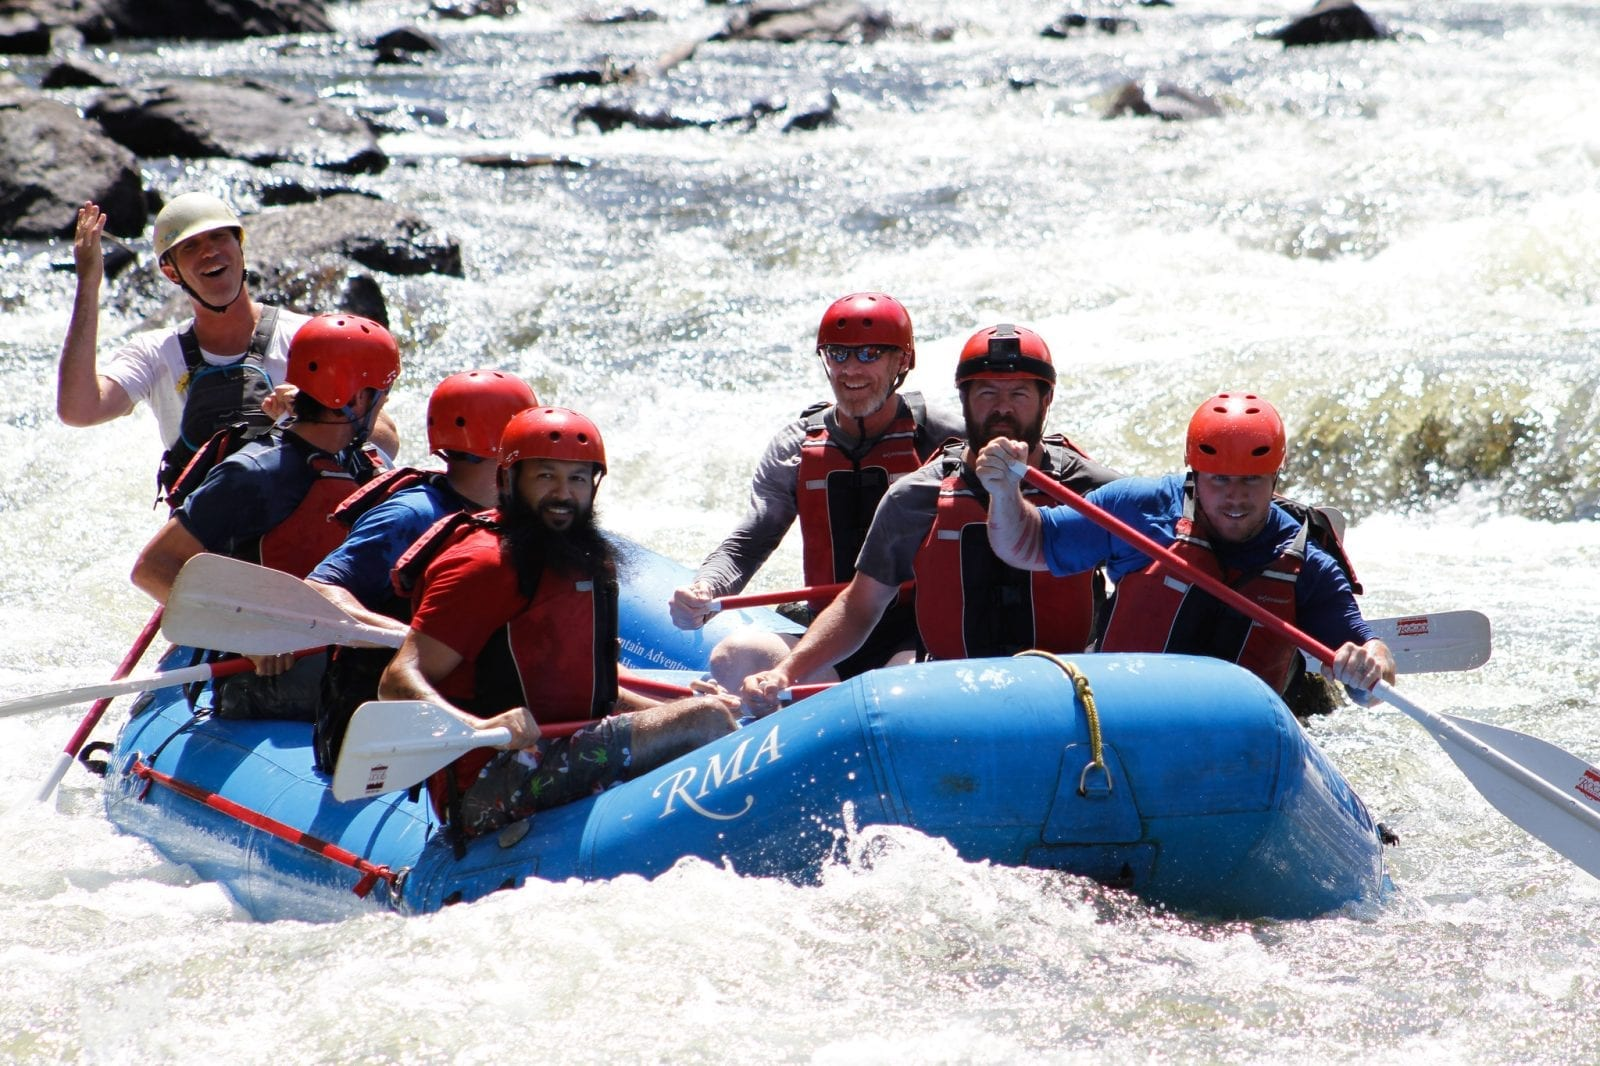 Image of 6 men whitewater rafting on cache la-poudre river in colorado